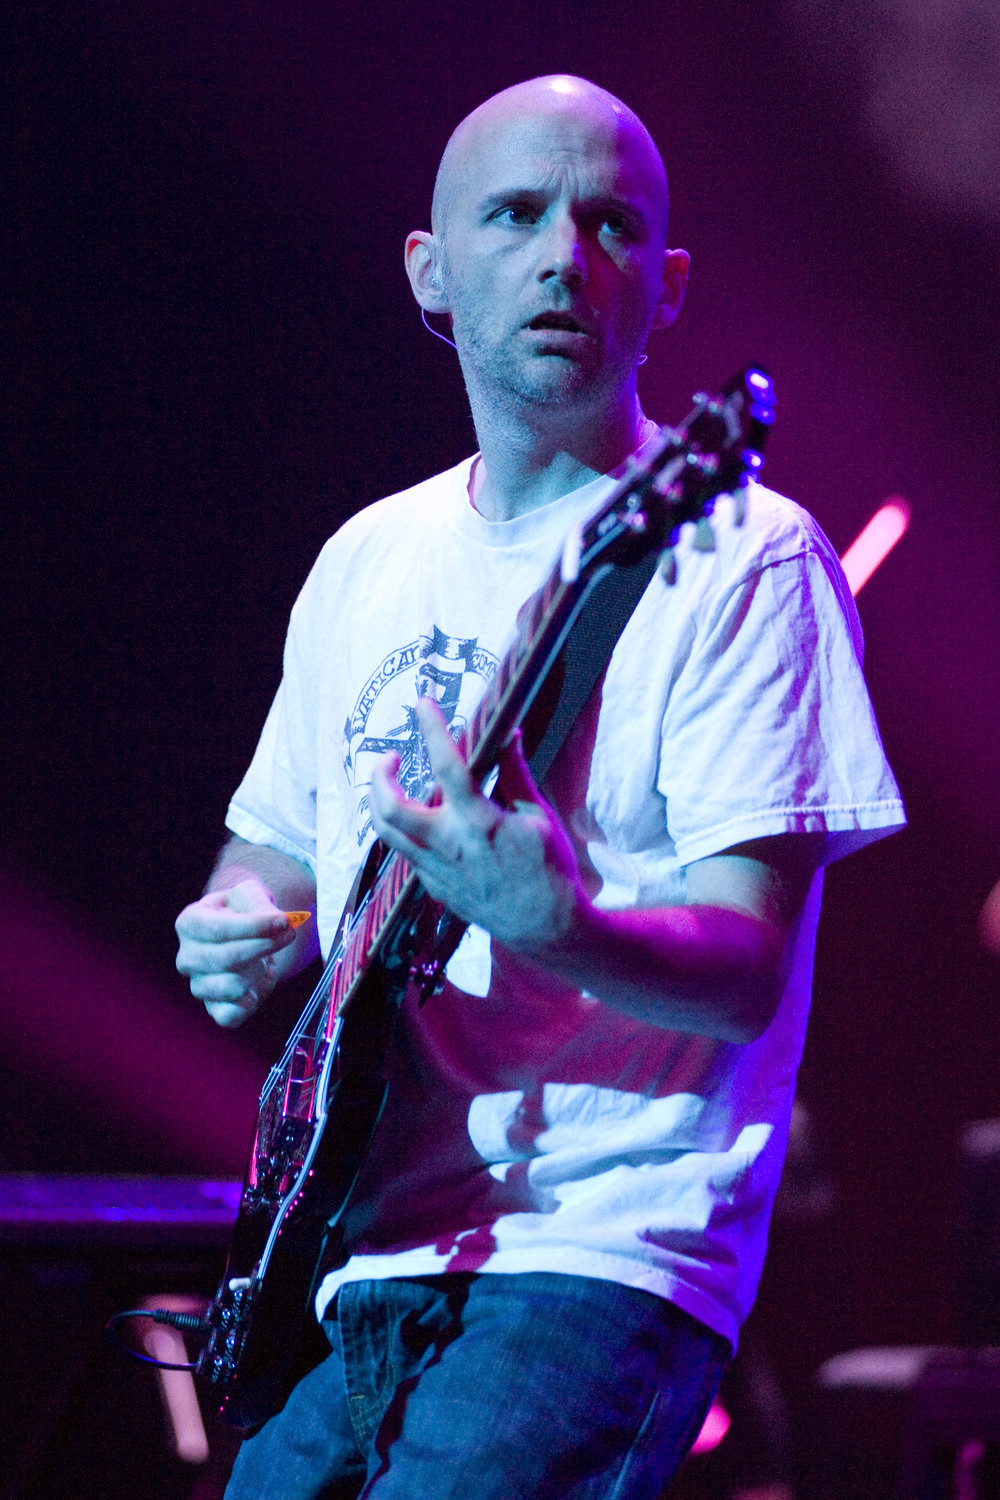 Moby_RFH_June16th_09_BBritton57.JPG